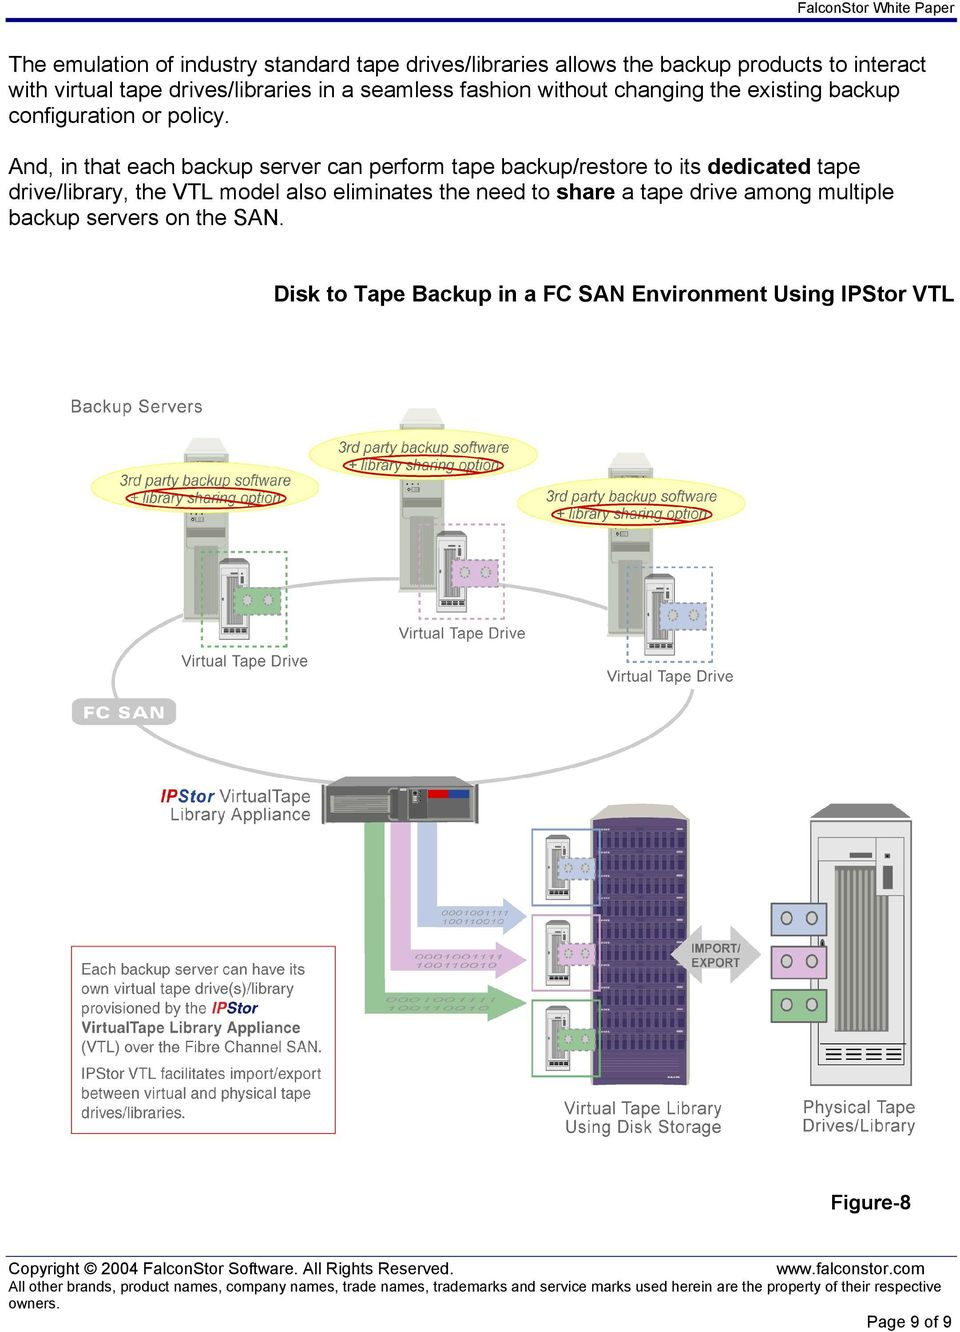 And, in that each backup server can perform tape backup/restore to its dedicated tape drive/library, the VTL model also